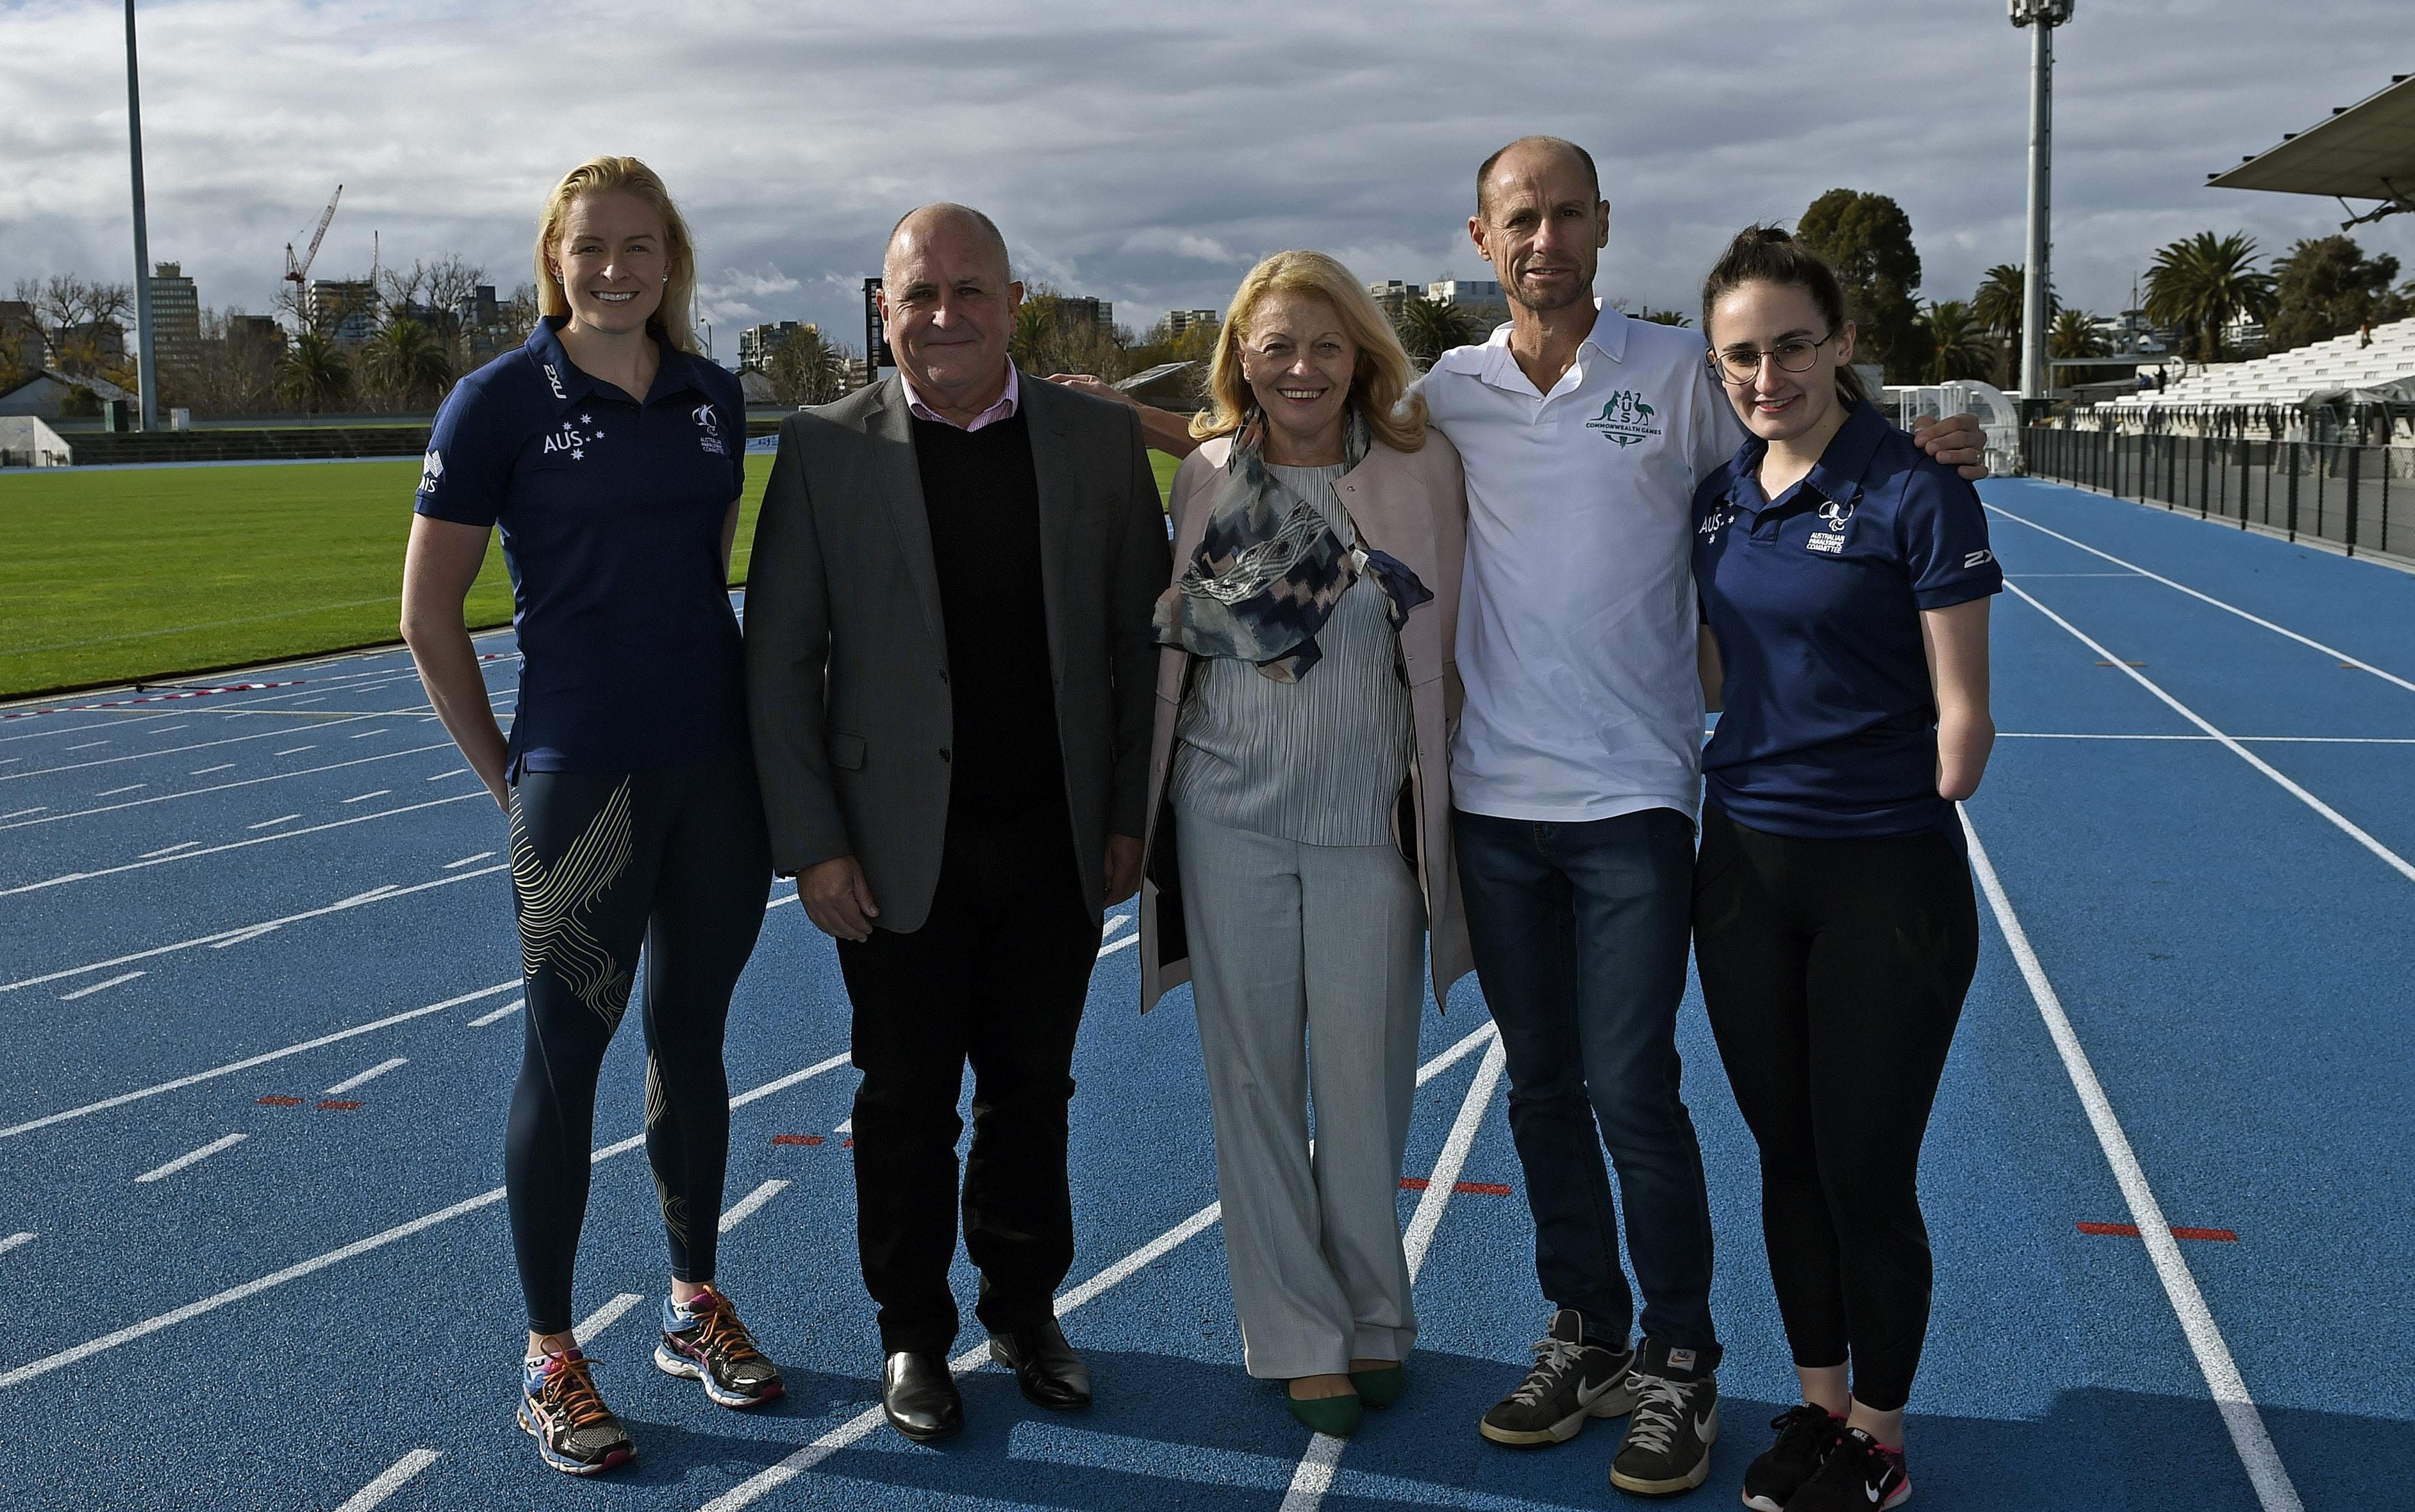 Commonwealth Games Australia announces new partnership with the APC